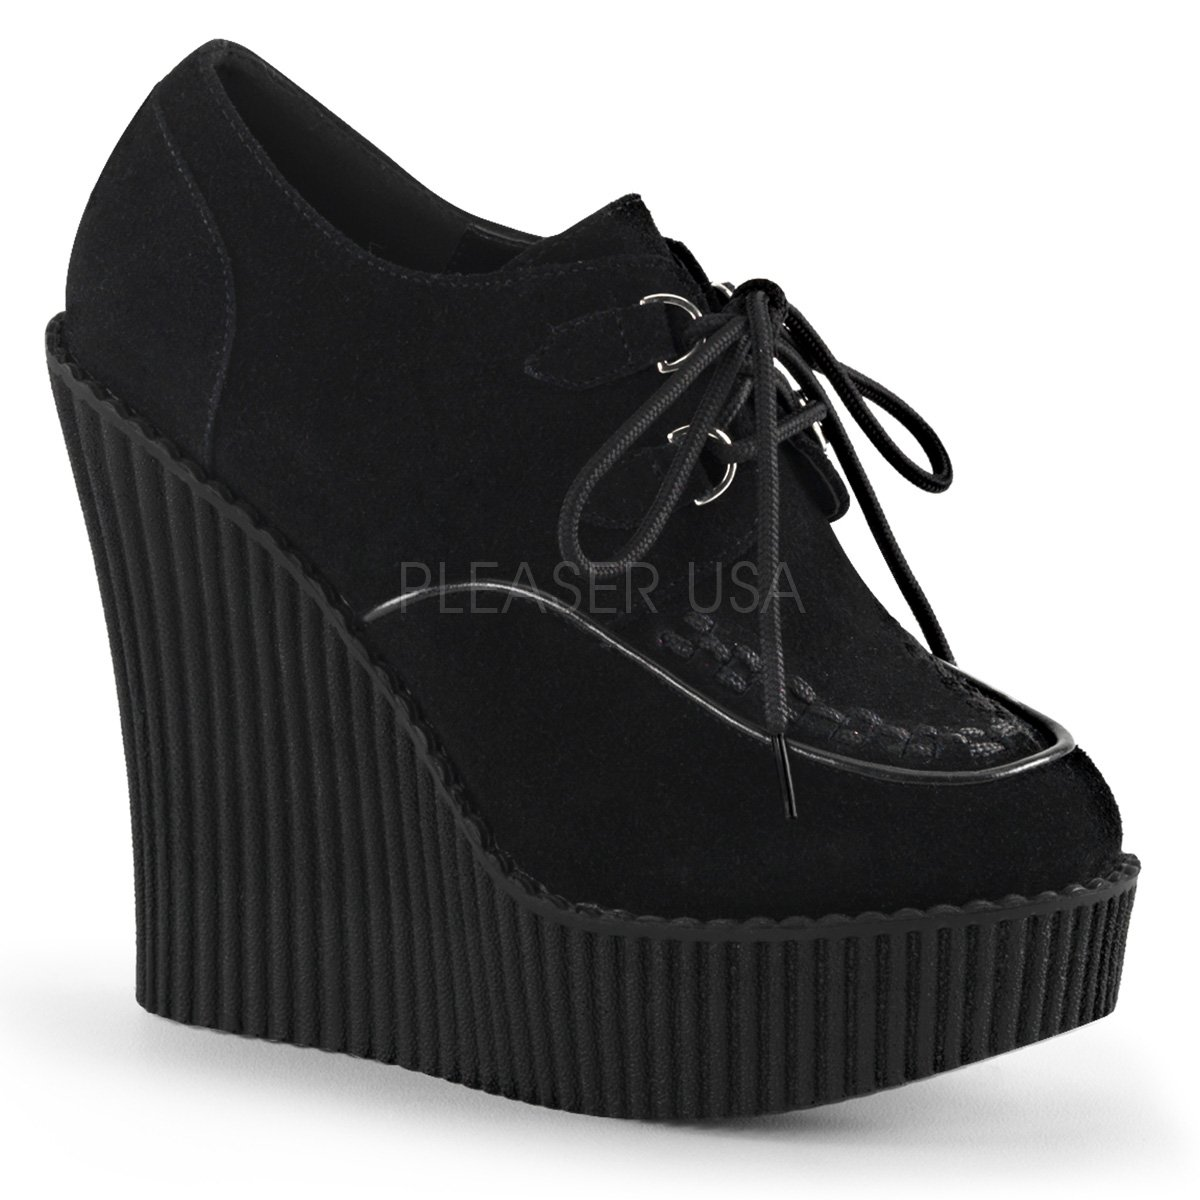 Demonia Pleaser CREEPER-302 Women 5 1/4 Wedge PF D-Ring Lace-up Front Vegan Creeper B018VIRNZW 8 B(M) US|Blk Vegan Suede